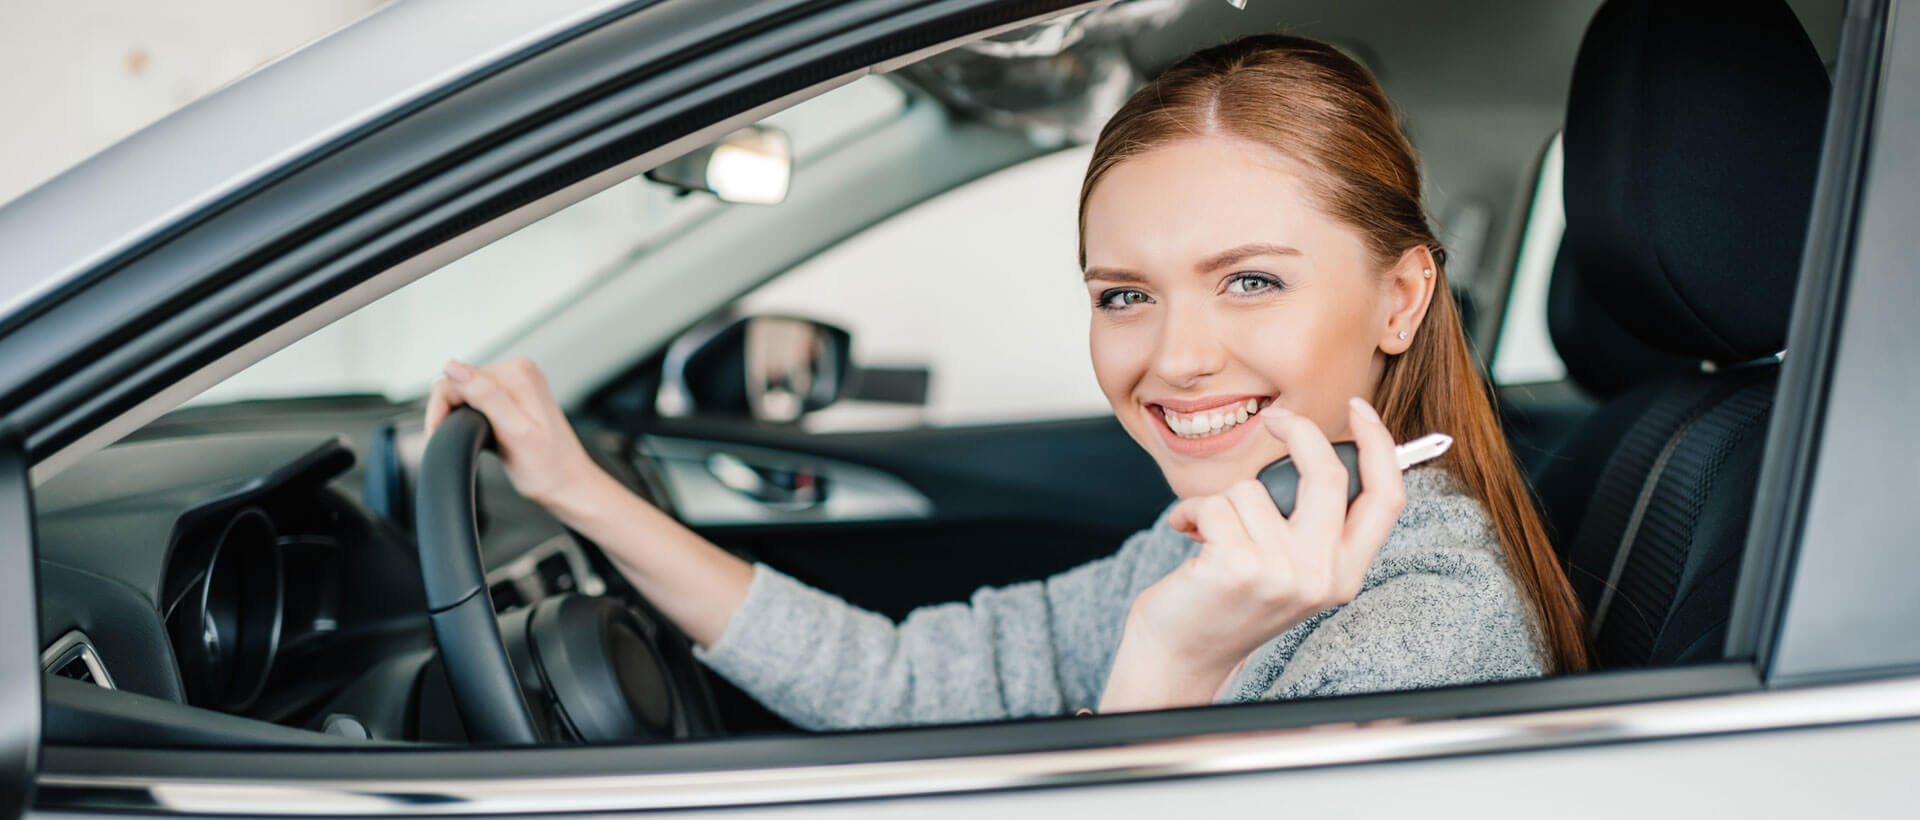 redhead woman in new car with keys